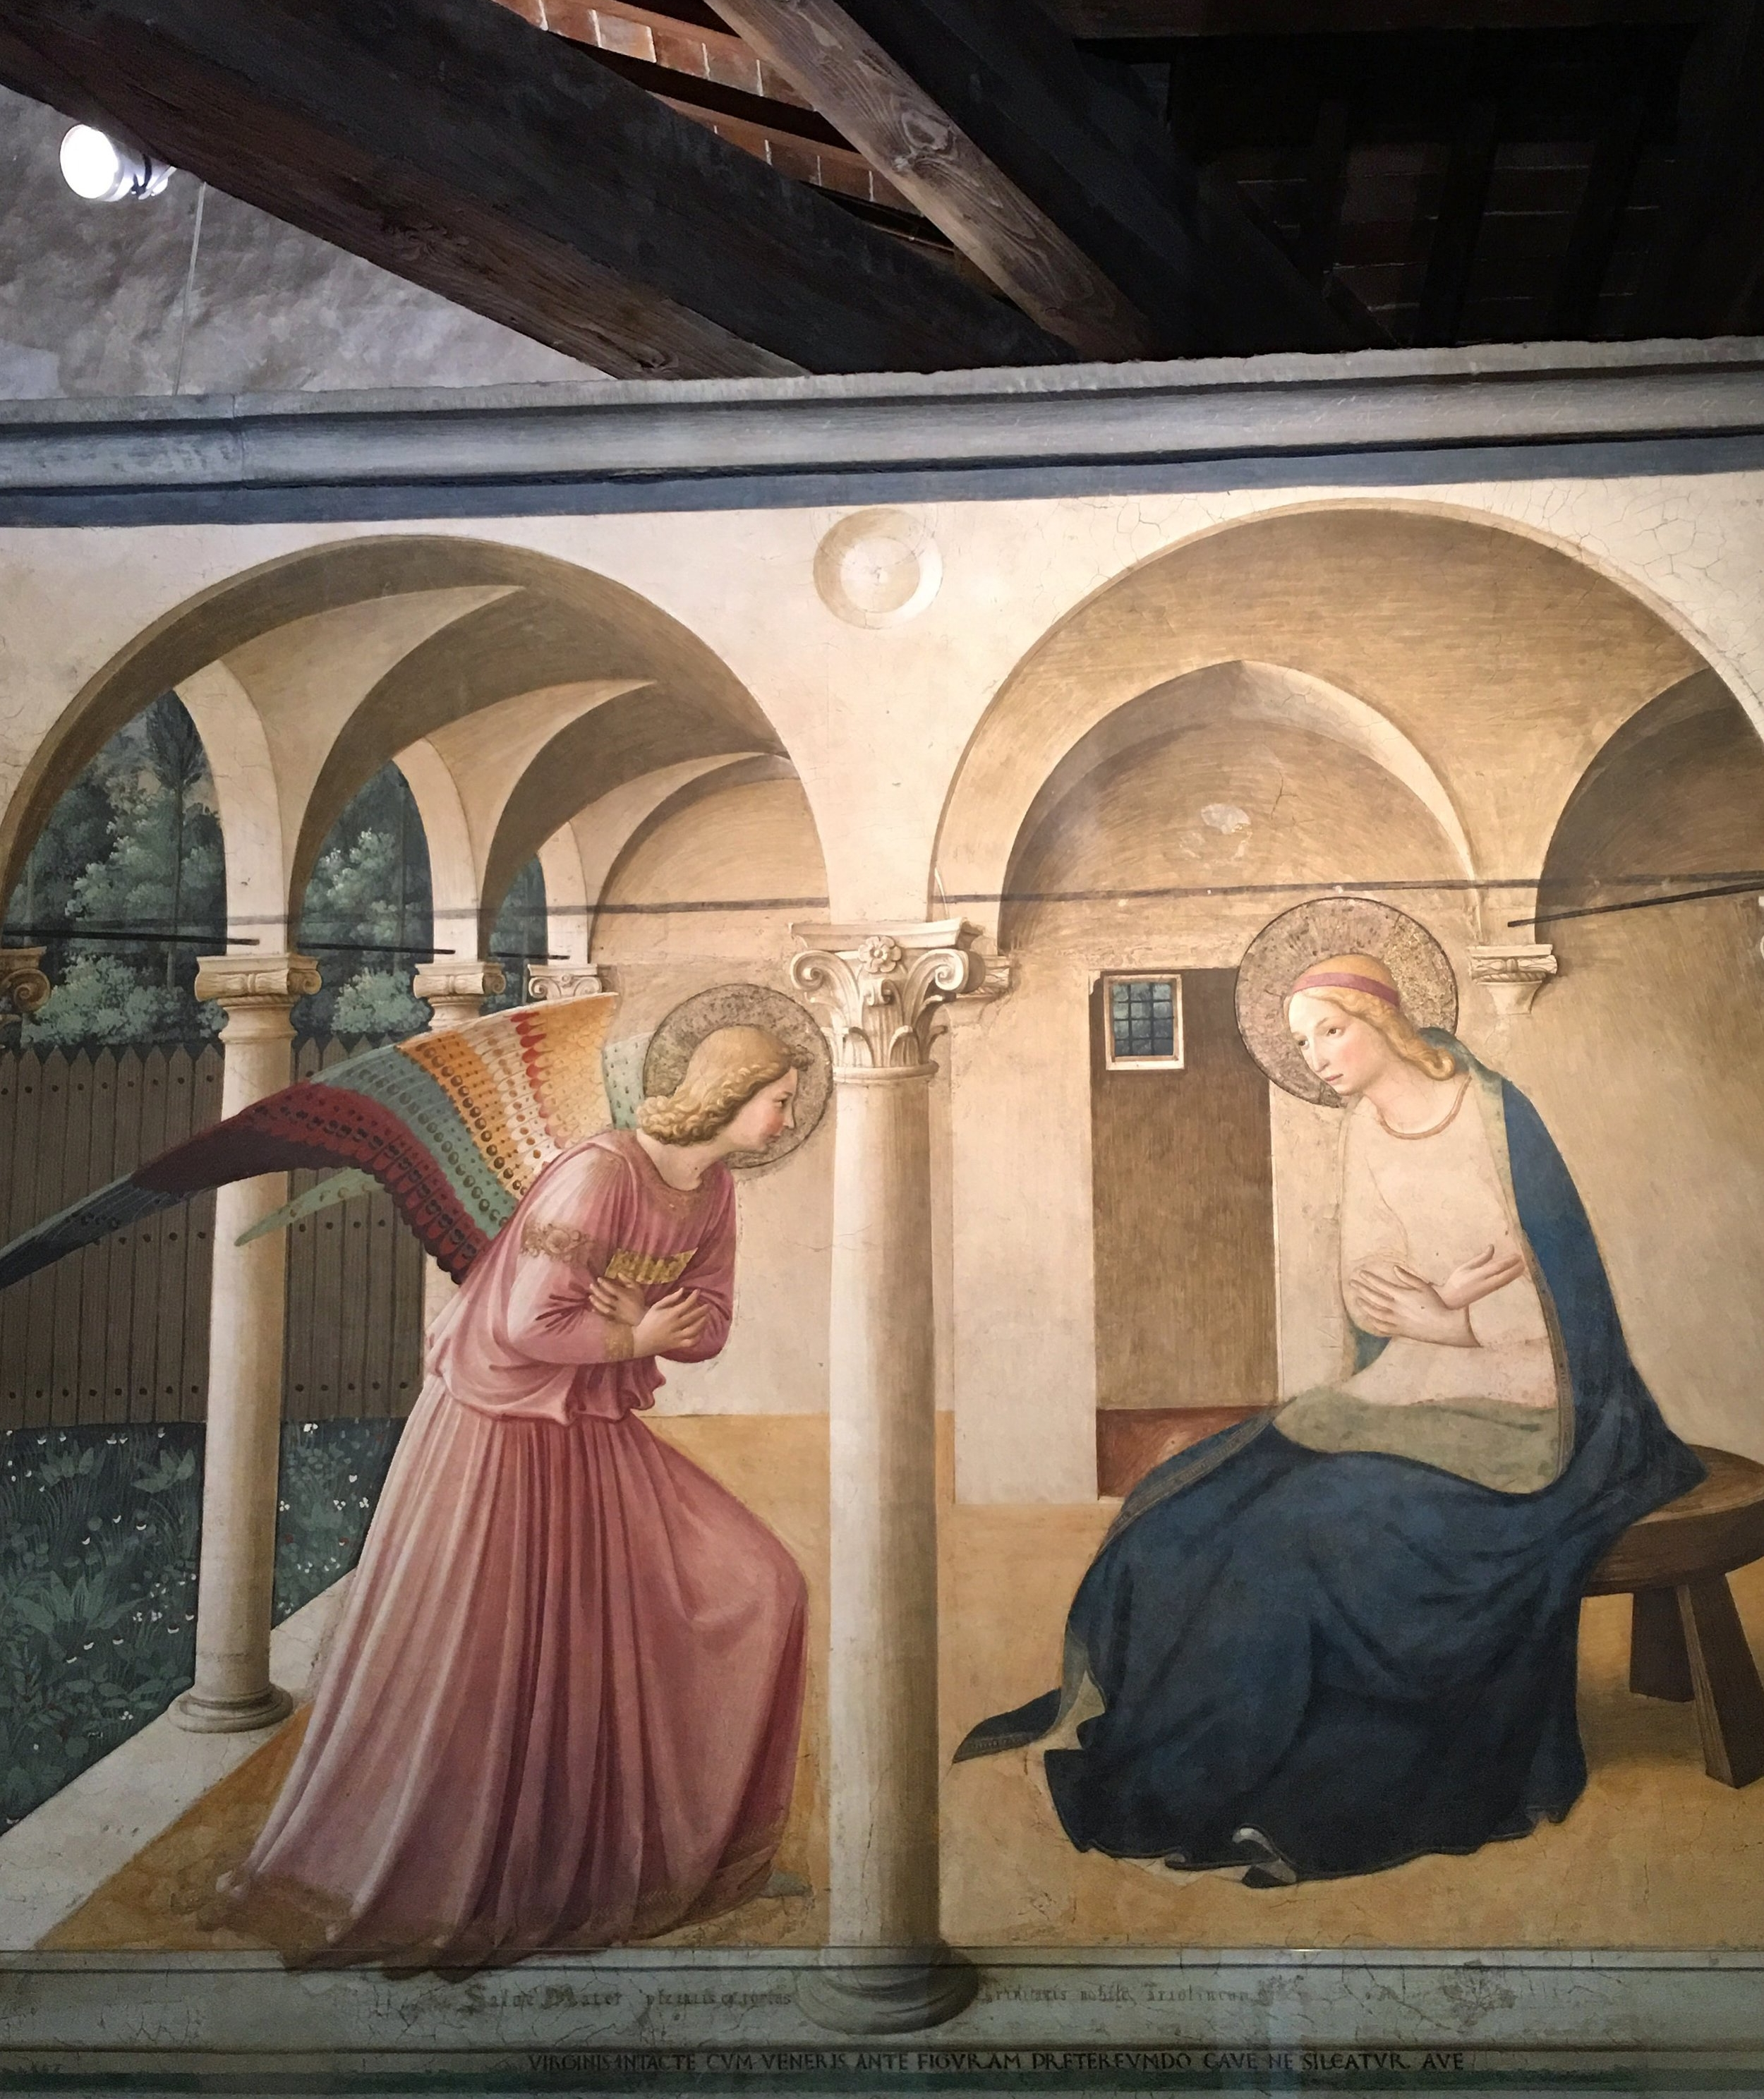 Fra Angelico's magnificent fresco of the Annunciation